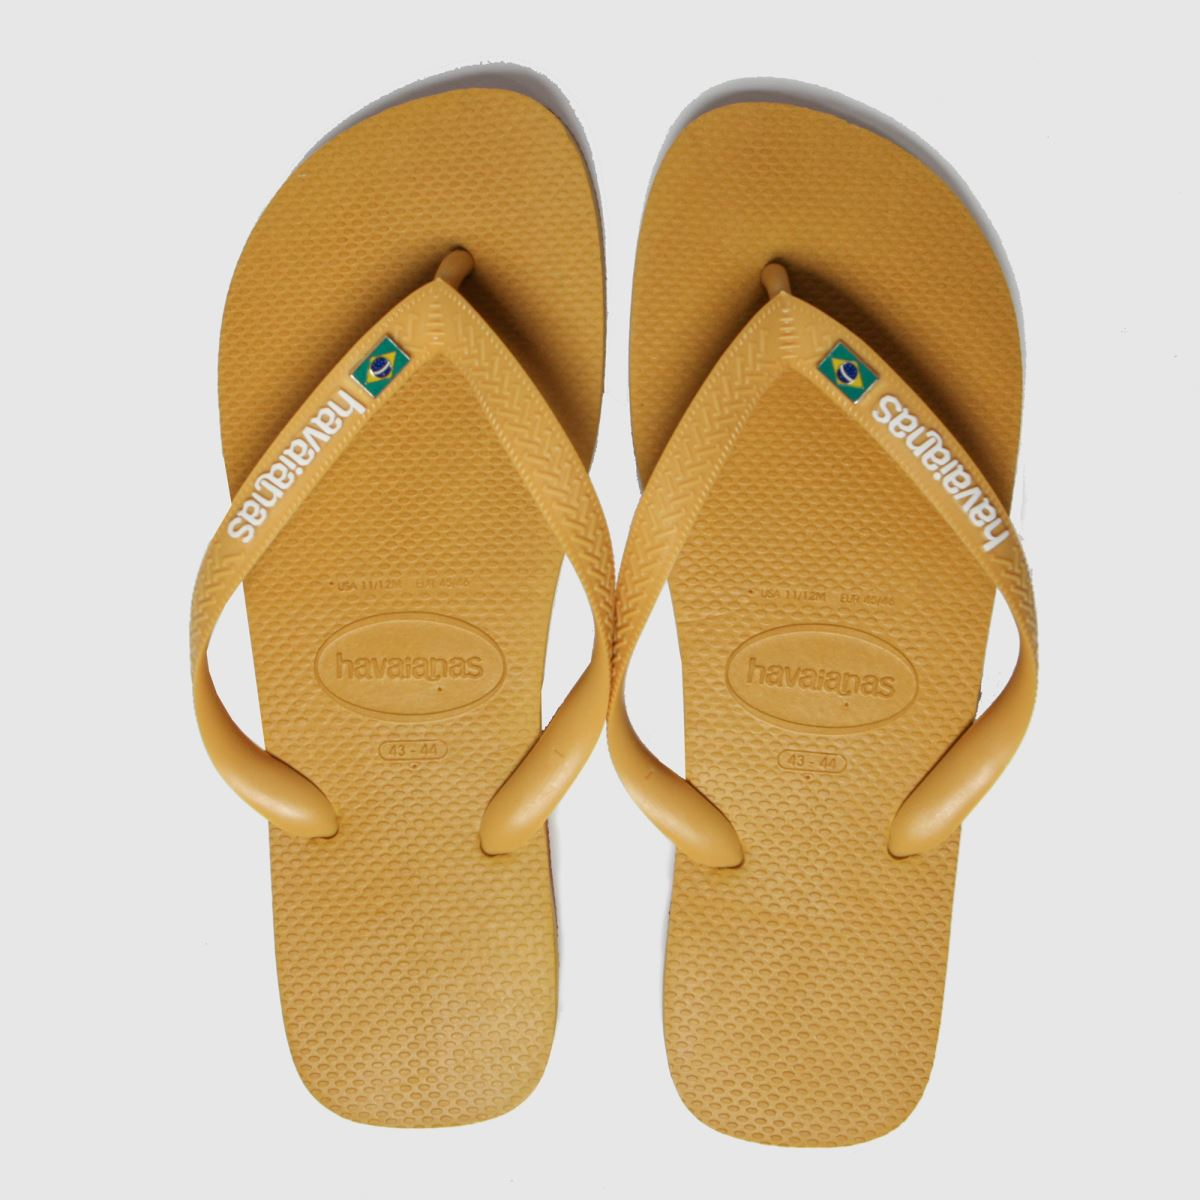 Havaianas Yellow Brasil Layers Sandals